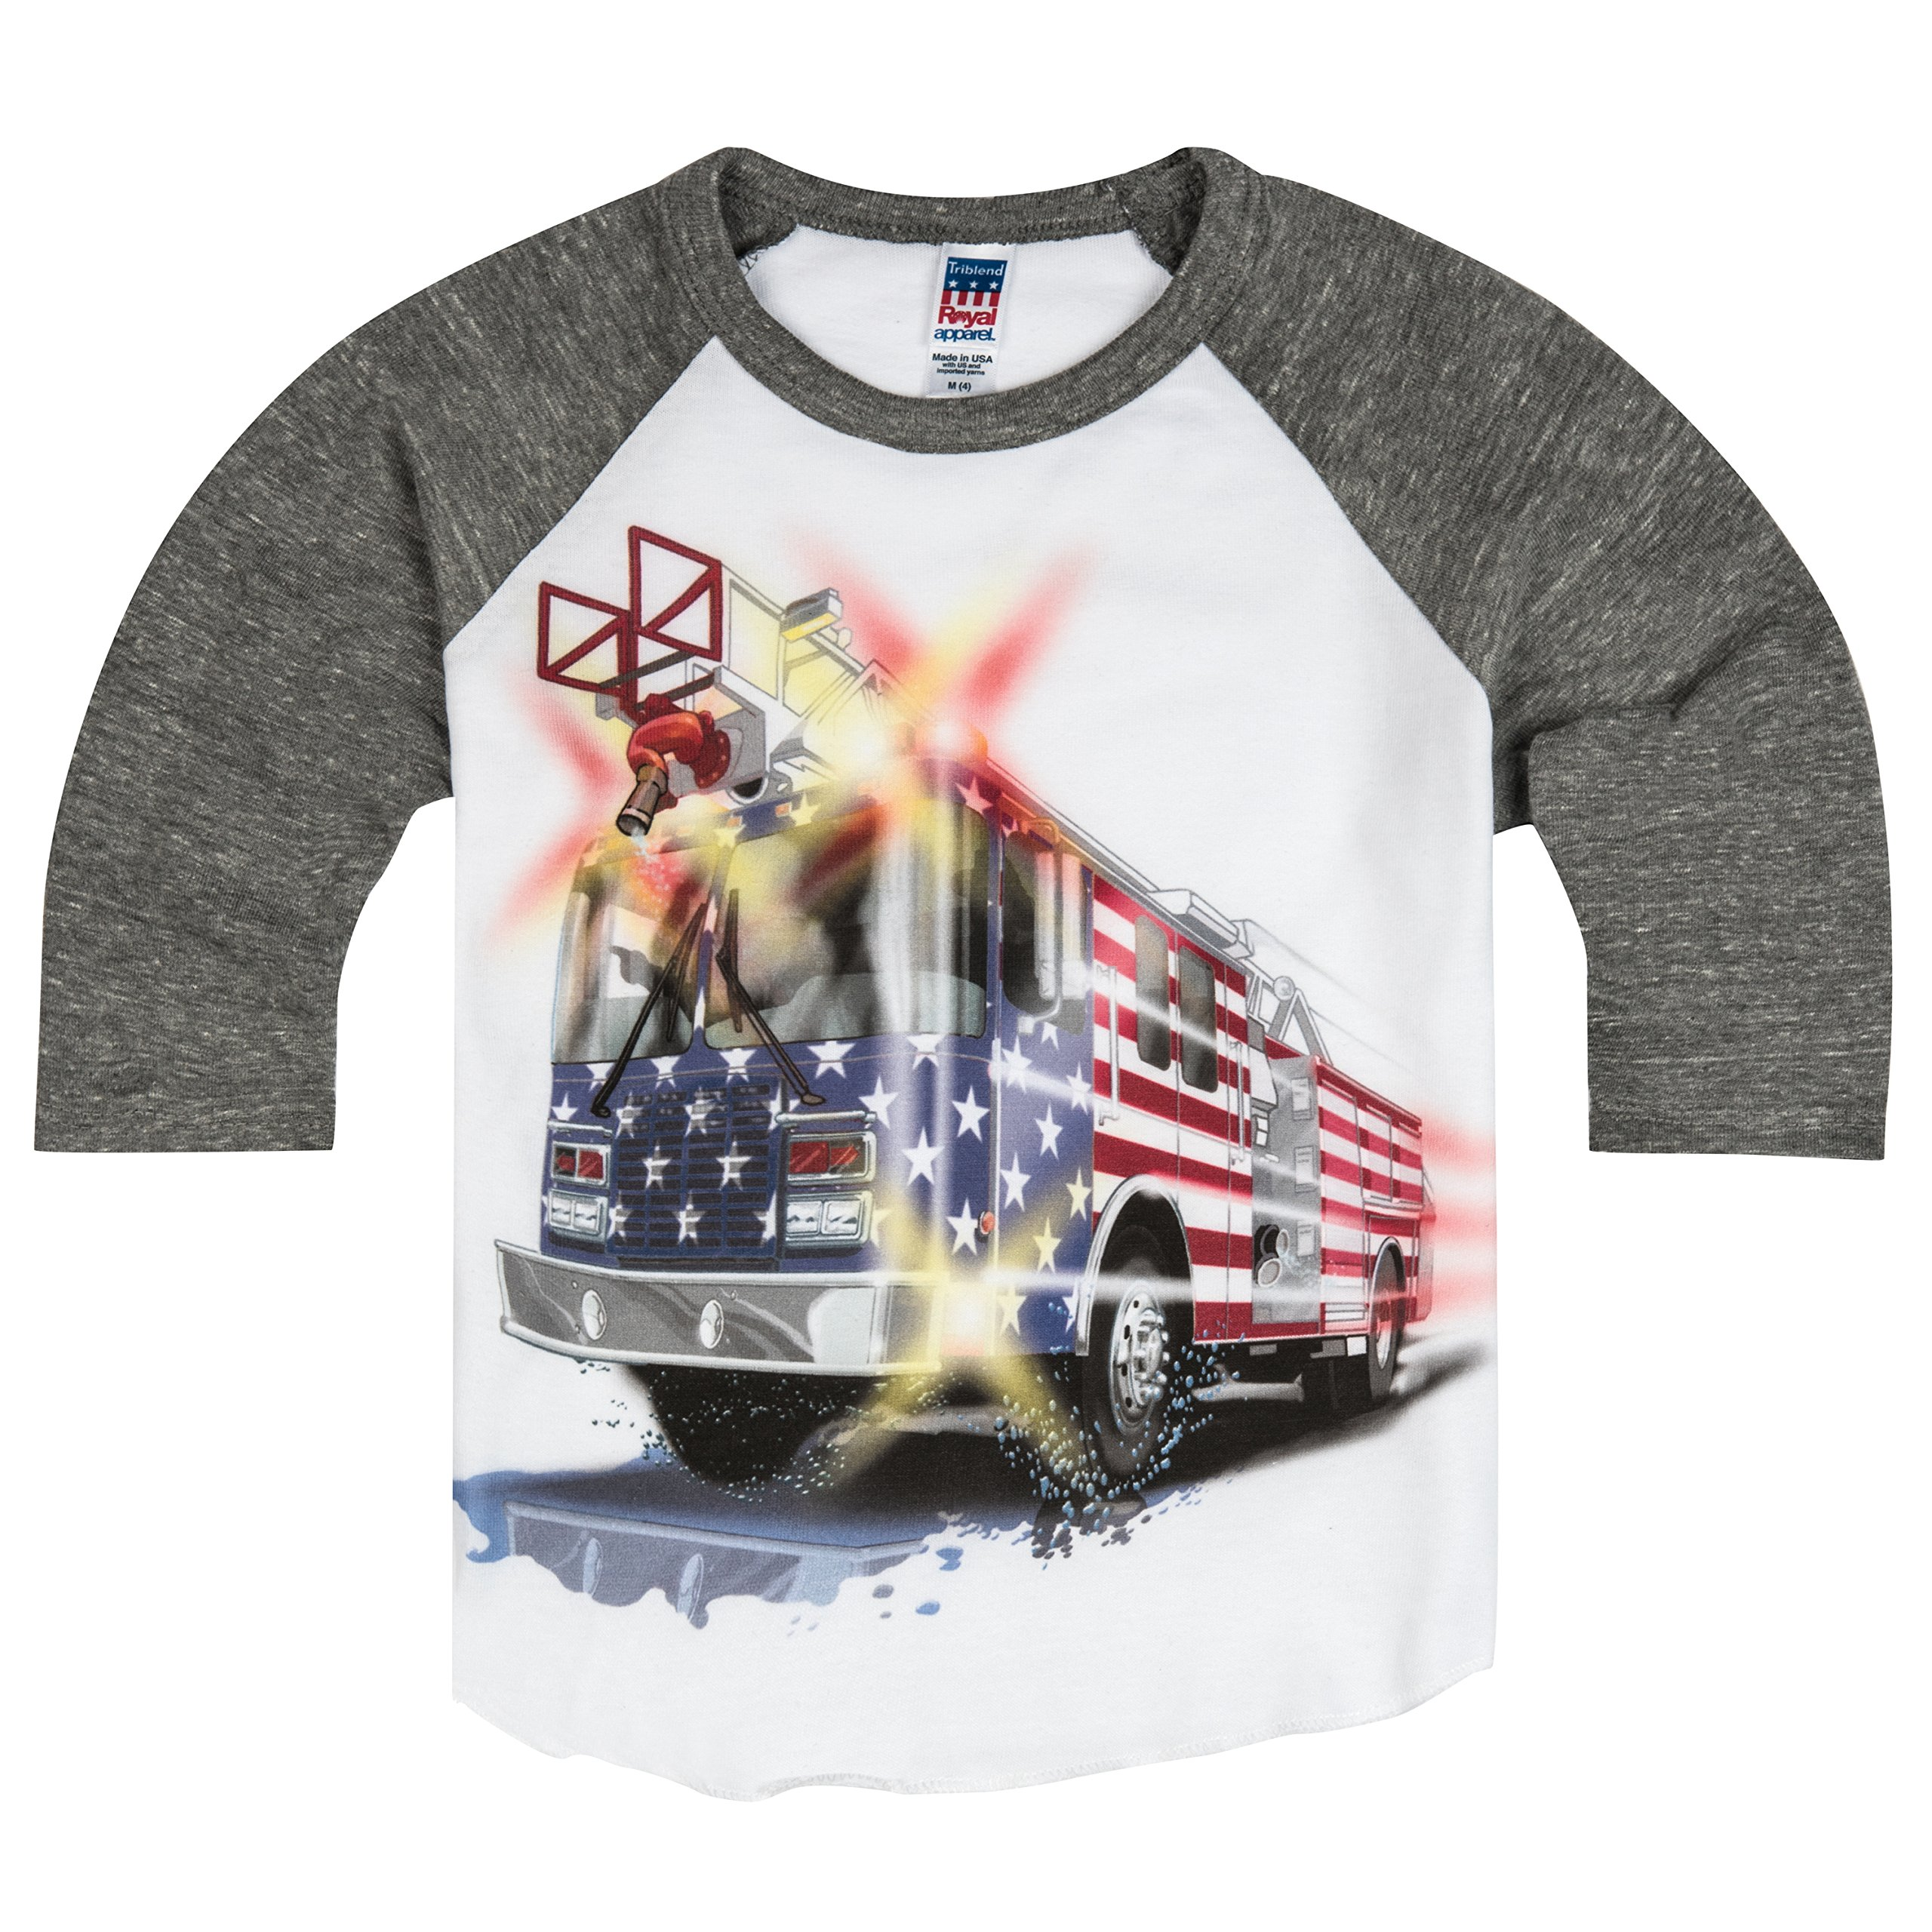 Shirts That Go Little Boys' Big USA Flag Fire Truck Raglan T-Shirt 8 Grey Sleeves